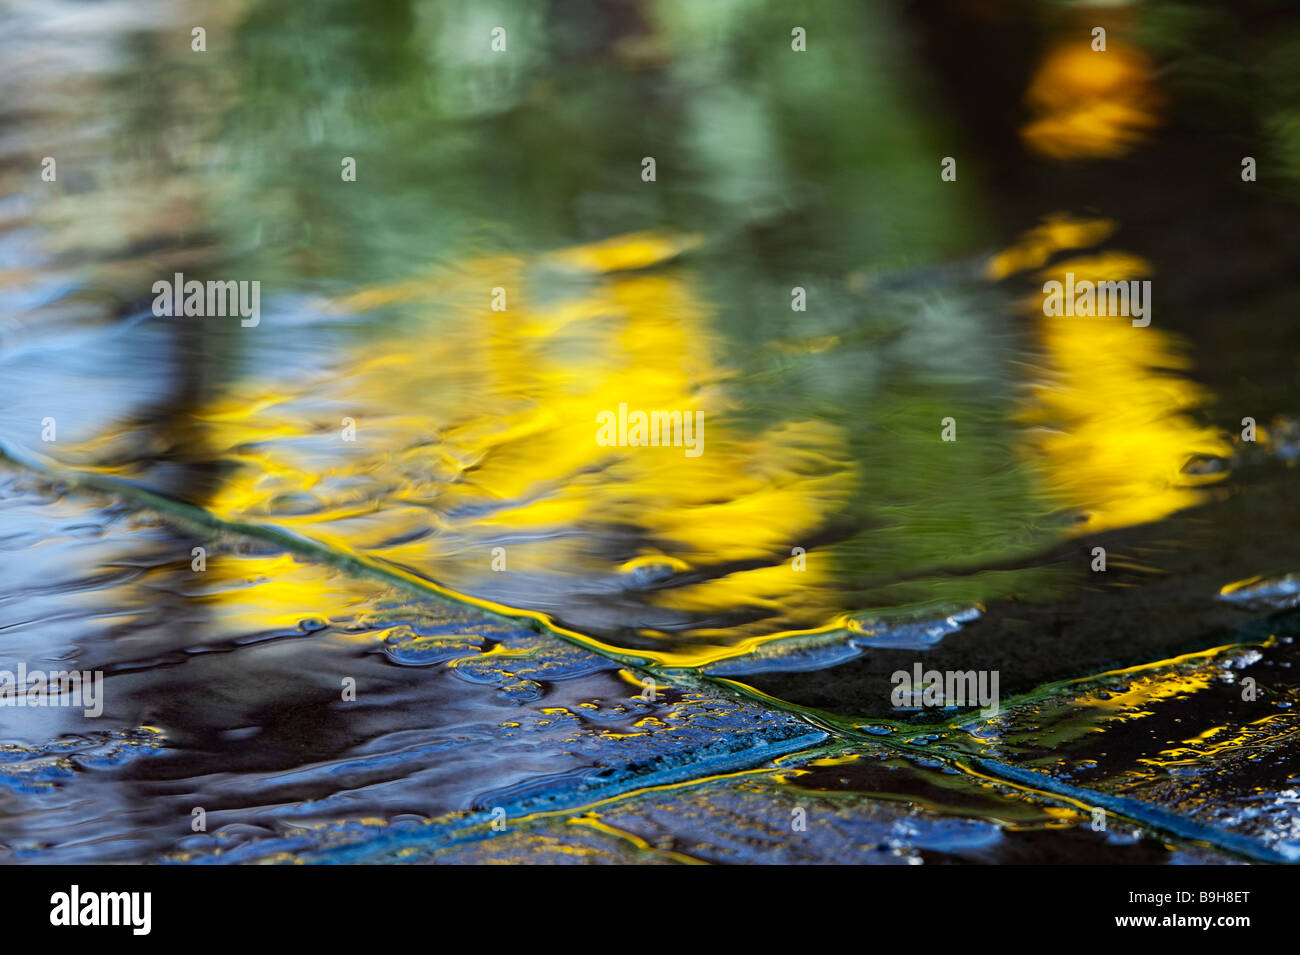 Water on garden paving slabs with reflections of daffodil flowers abstract Stock Photo